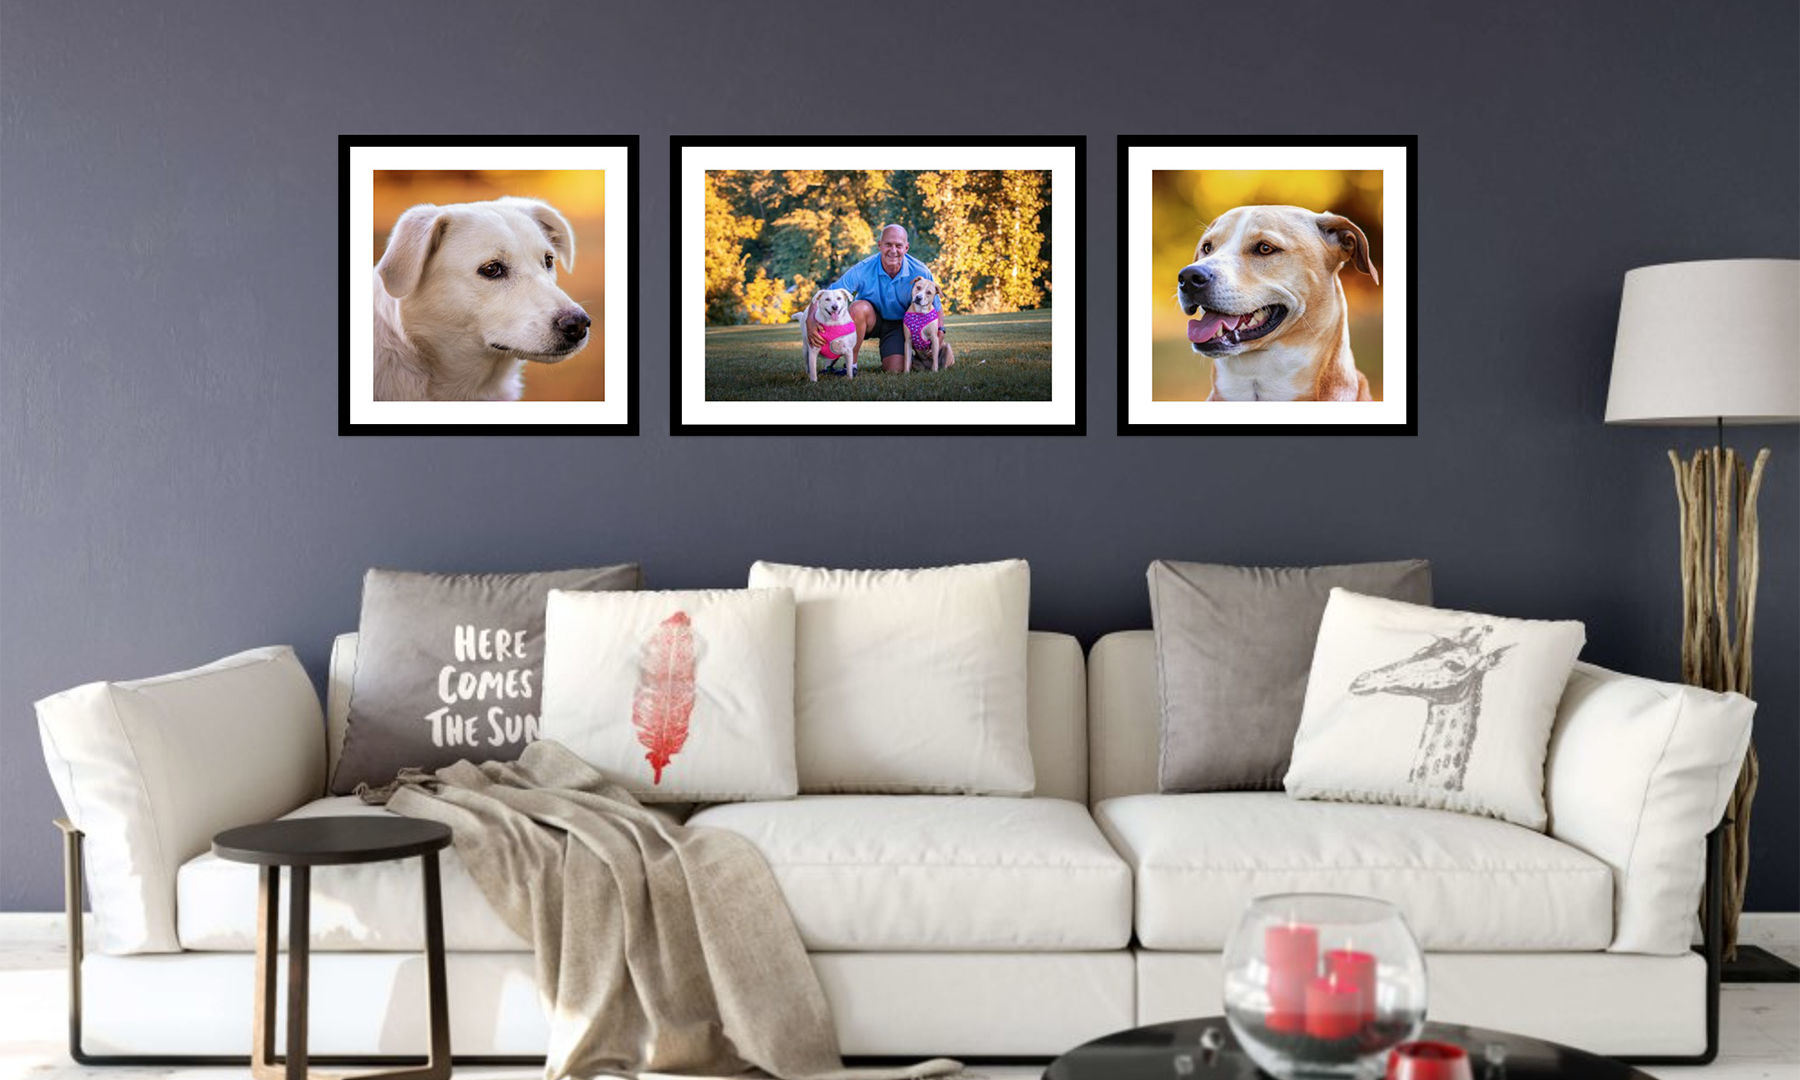 k9photo-choose-your-arrangement-2.jpg